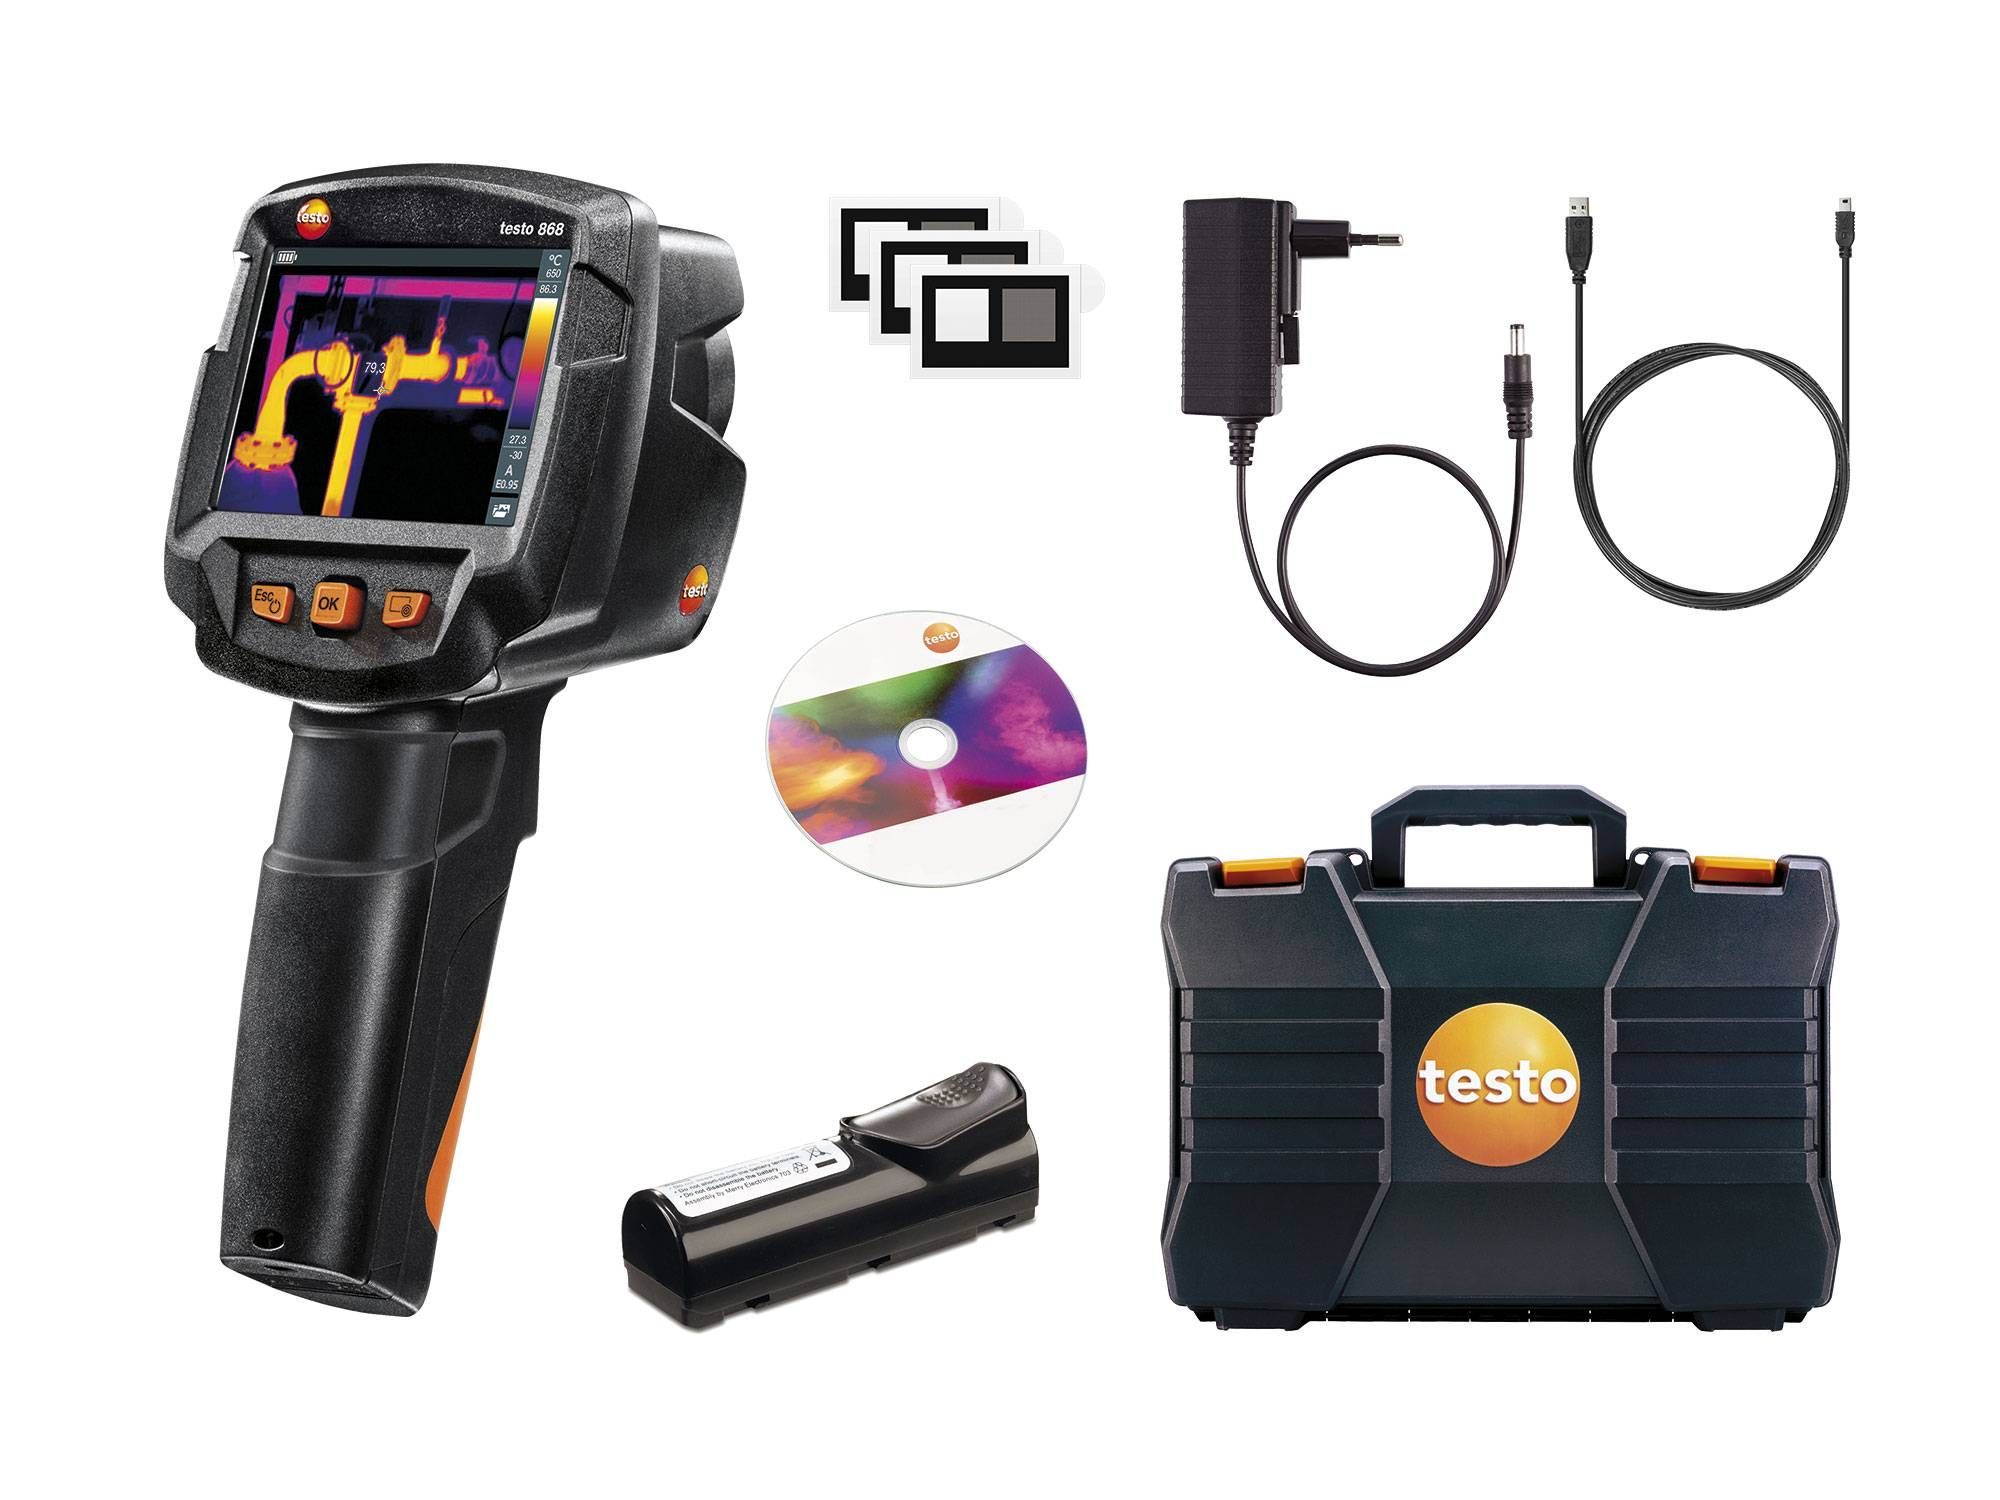 testo 868 - thermal imager with App - Delivery scope